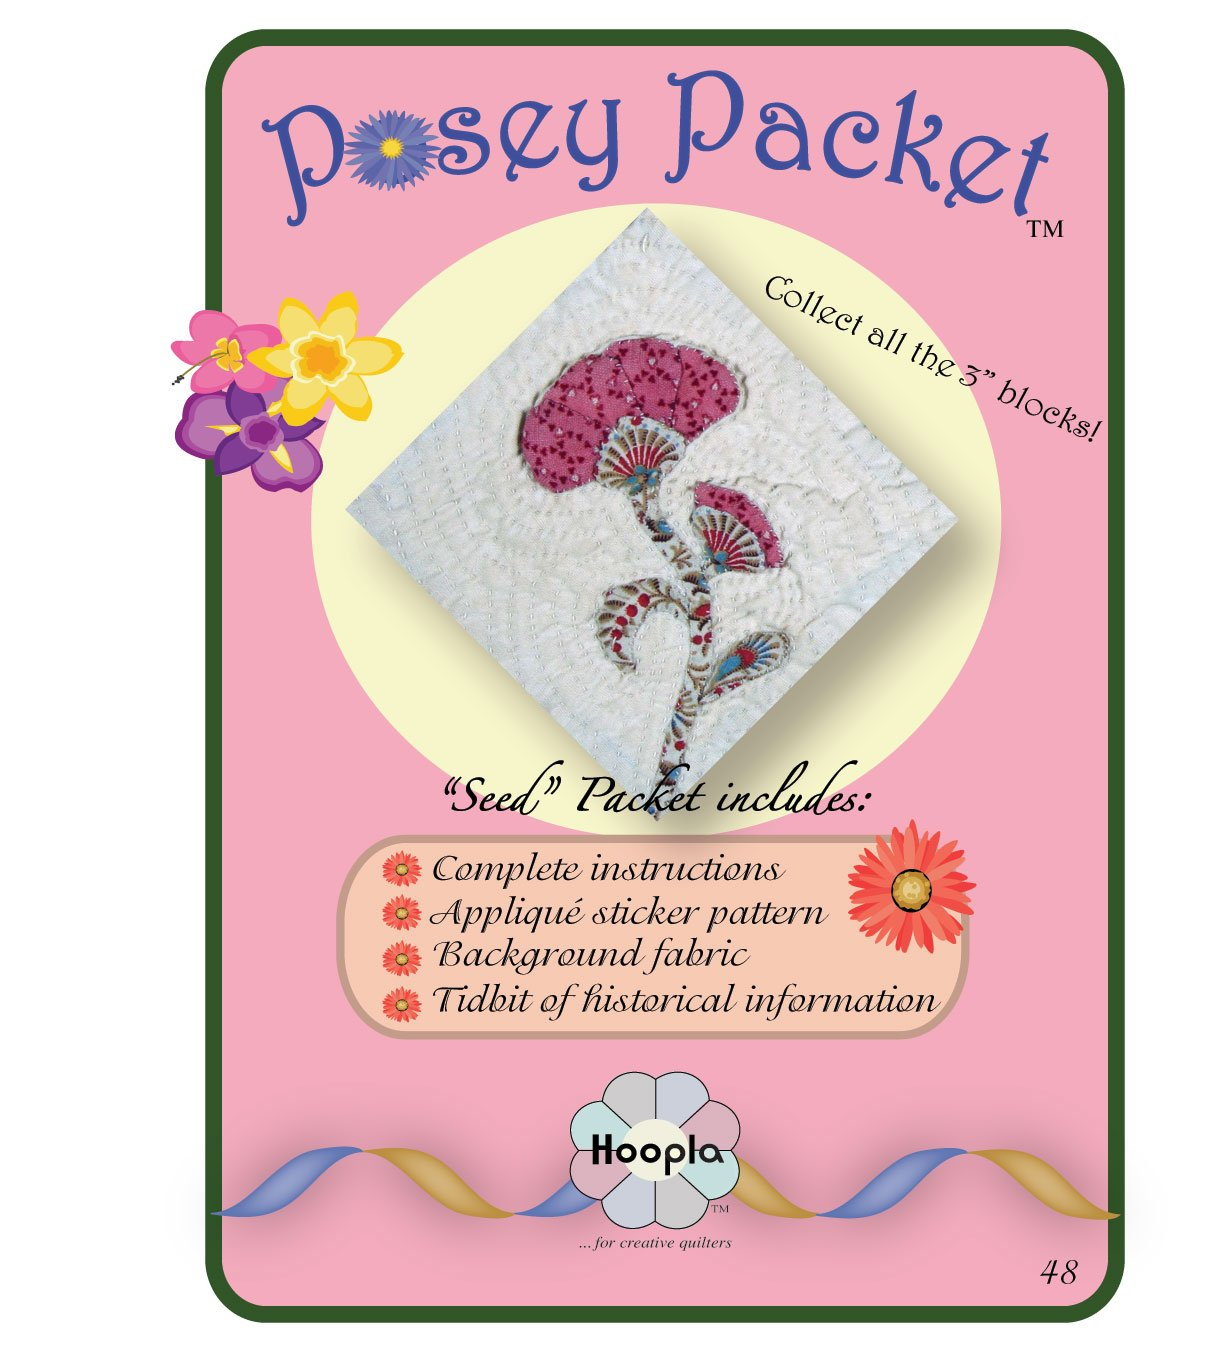 Posey Packet 48